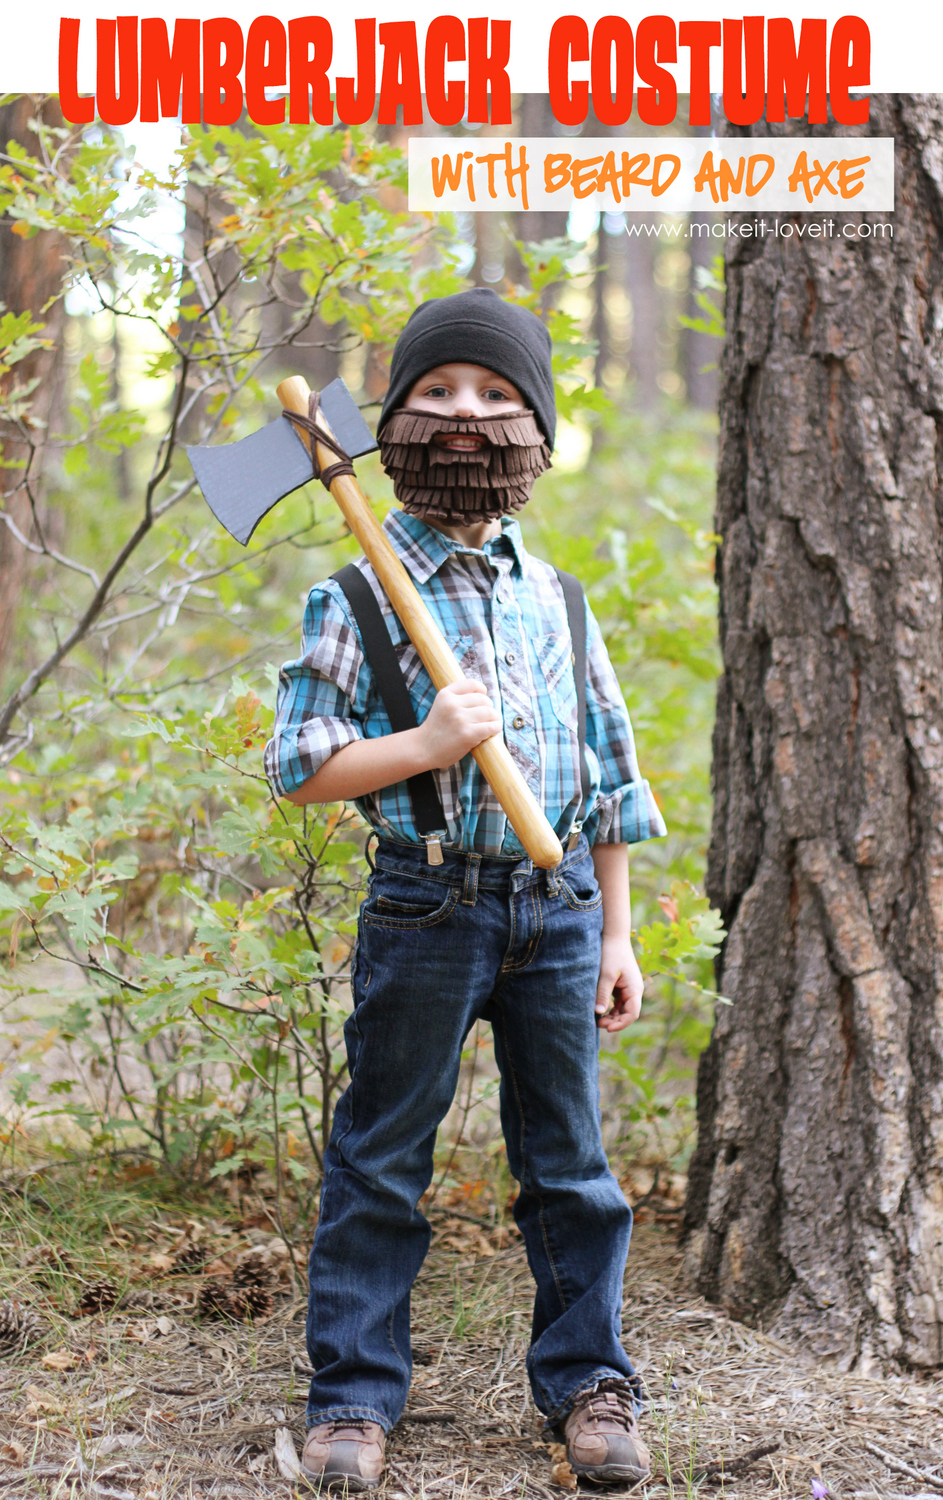 Lumberjack with Beard and Axe Costume